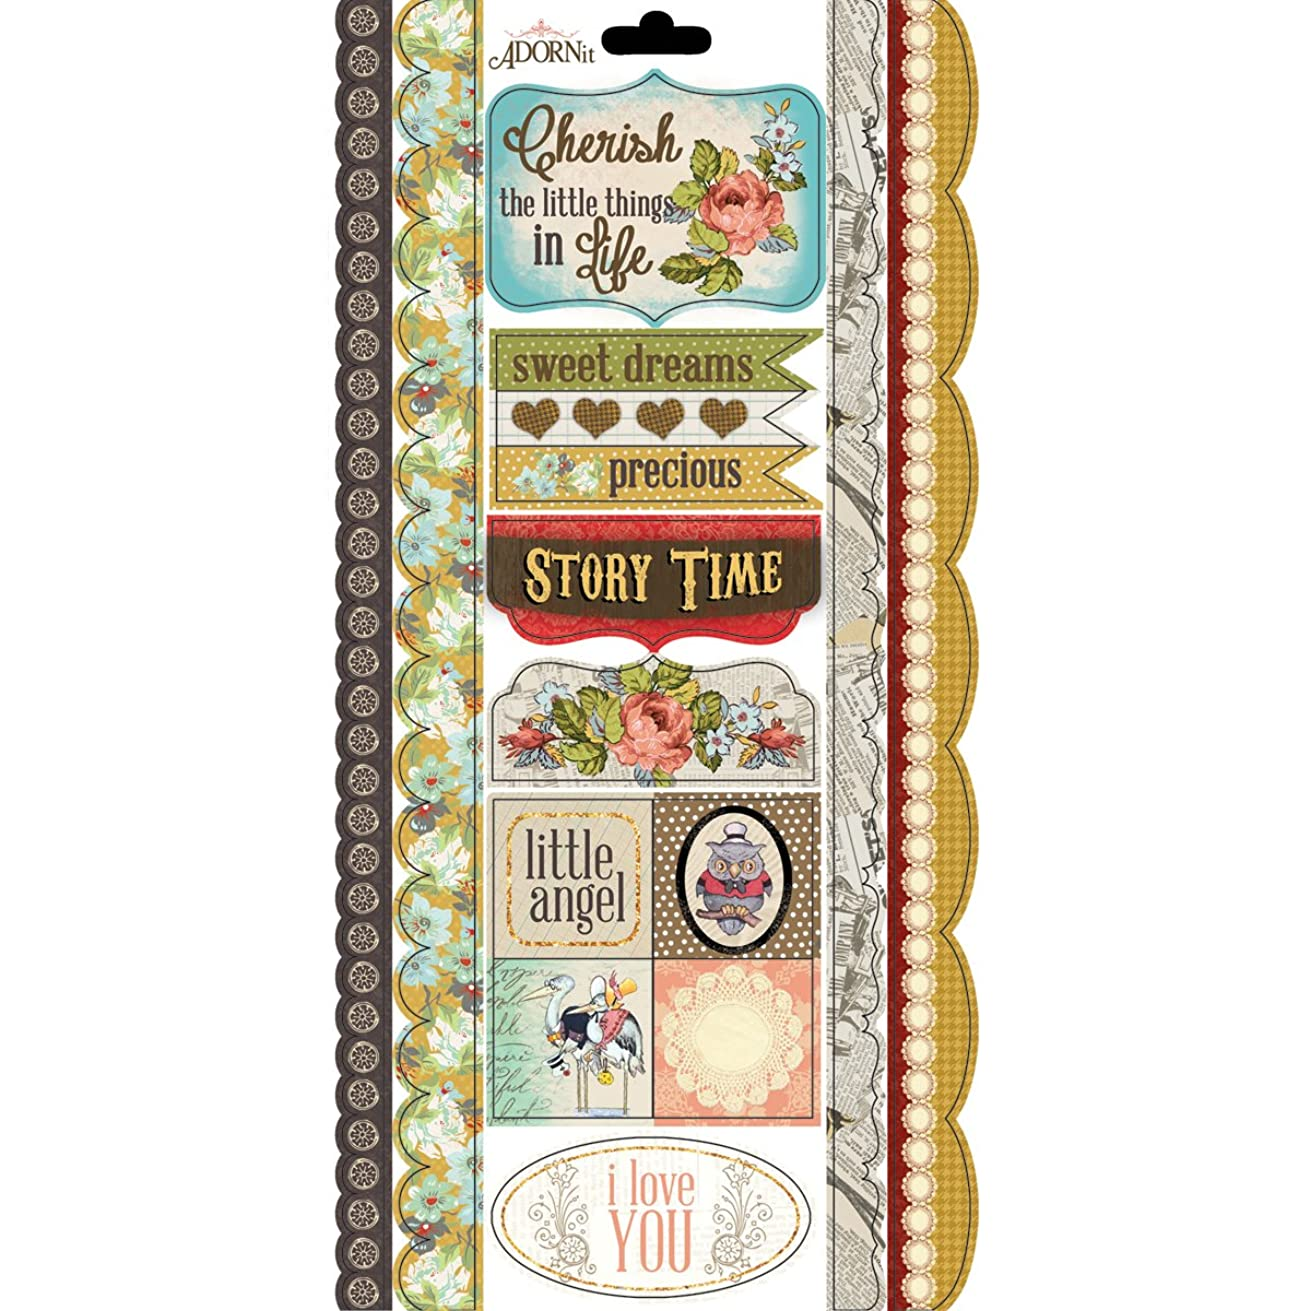 Adorn-It Fairy Tales Storybook Cardstock Stickers